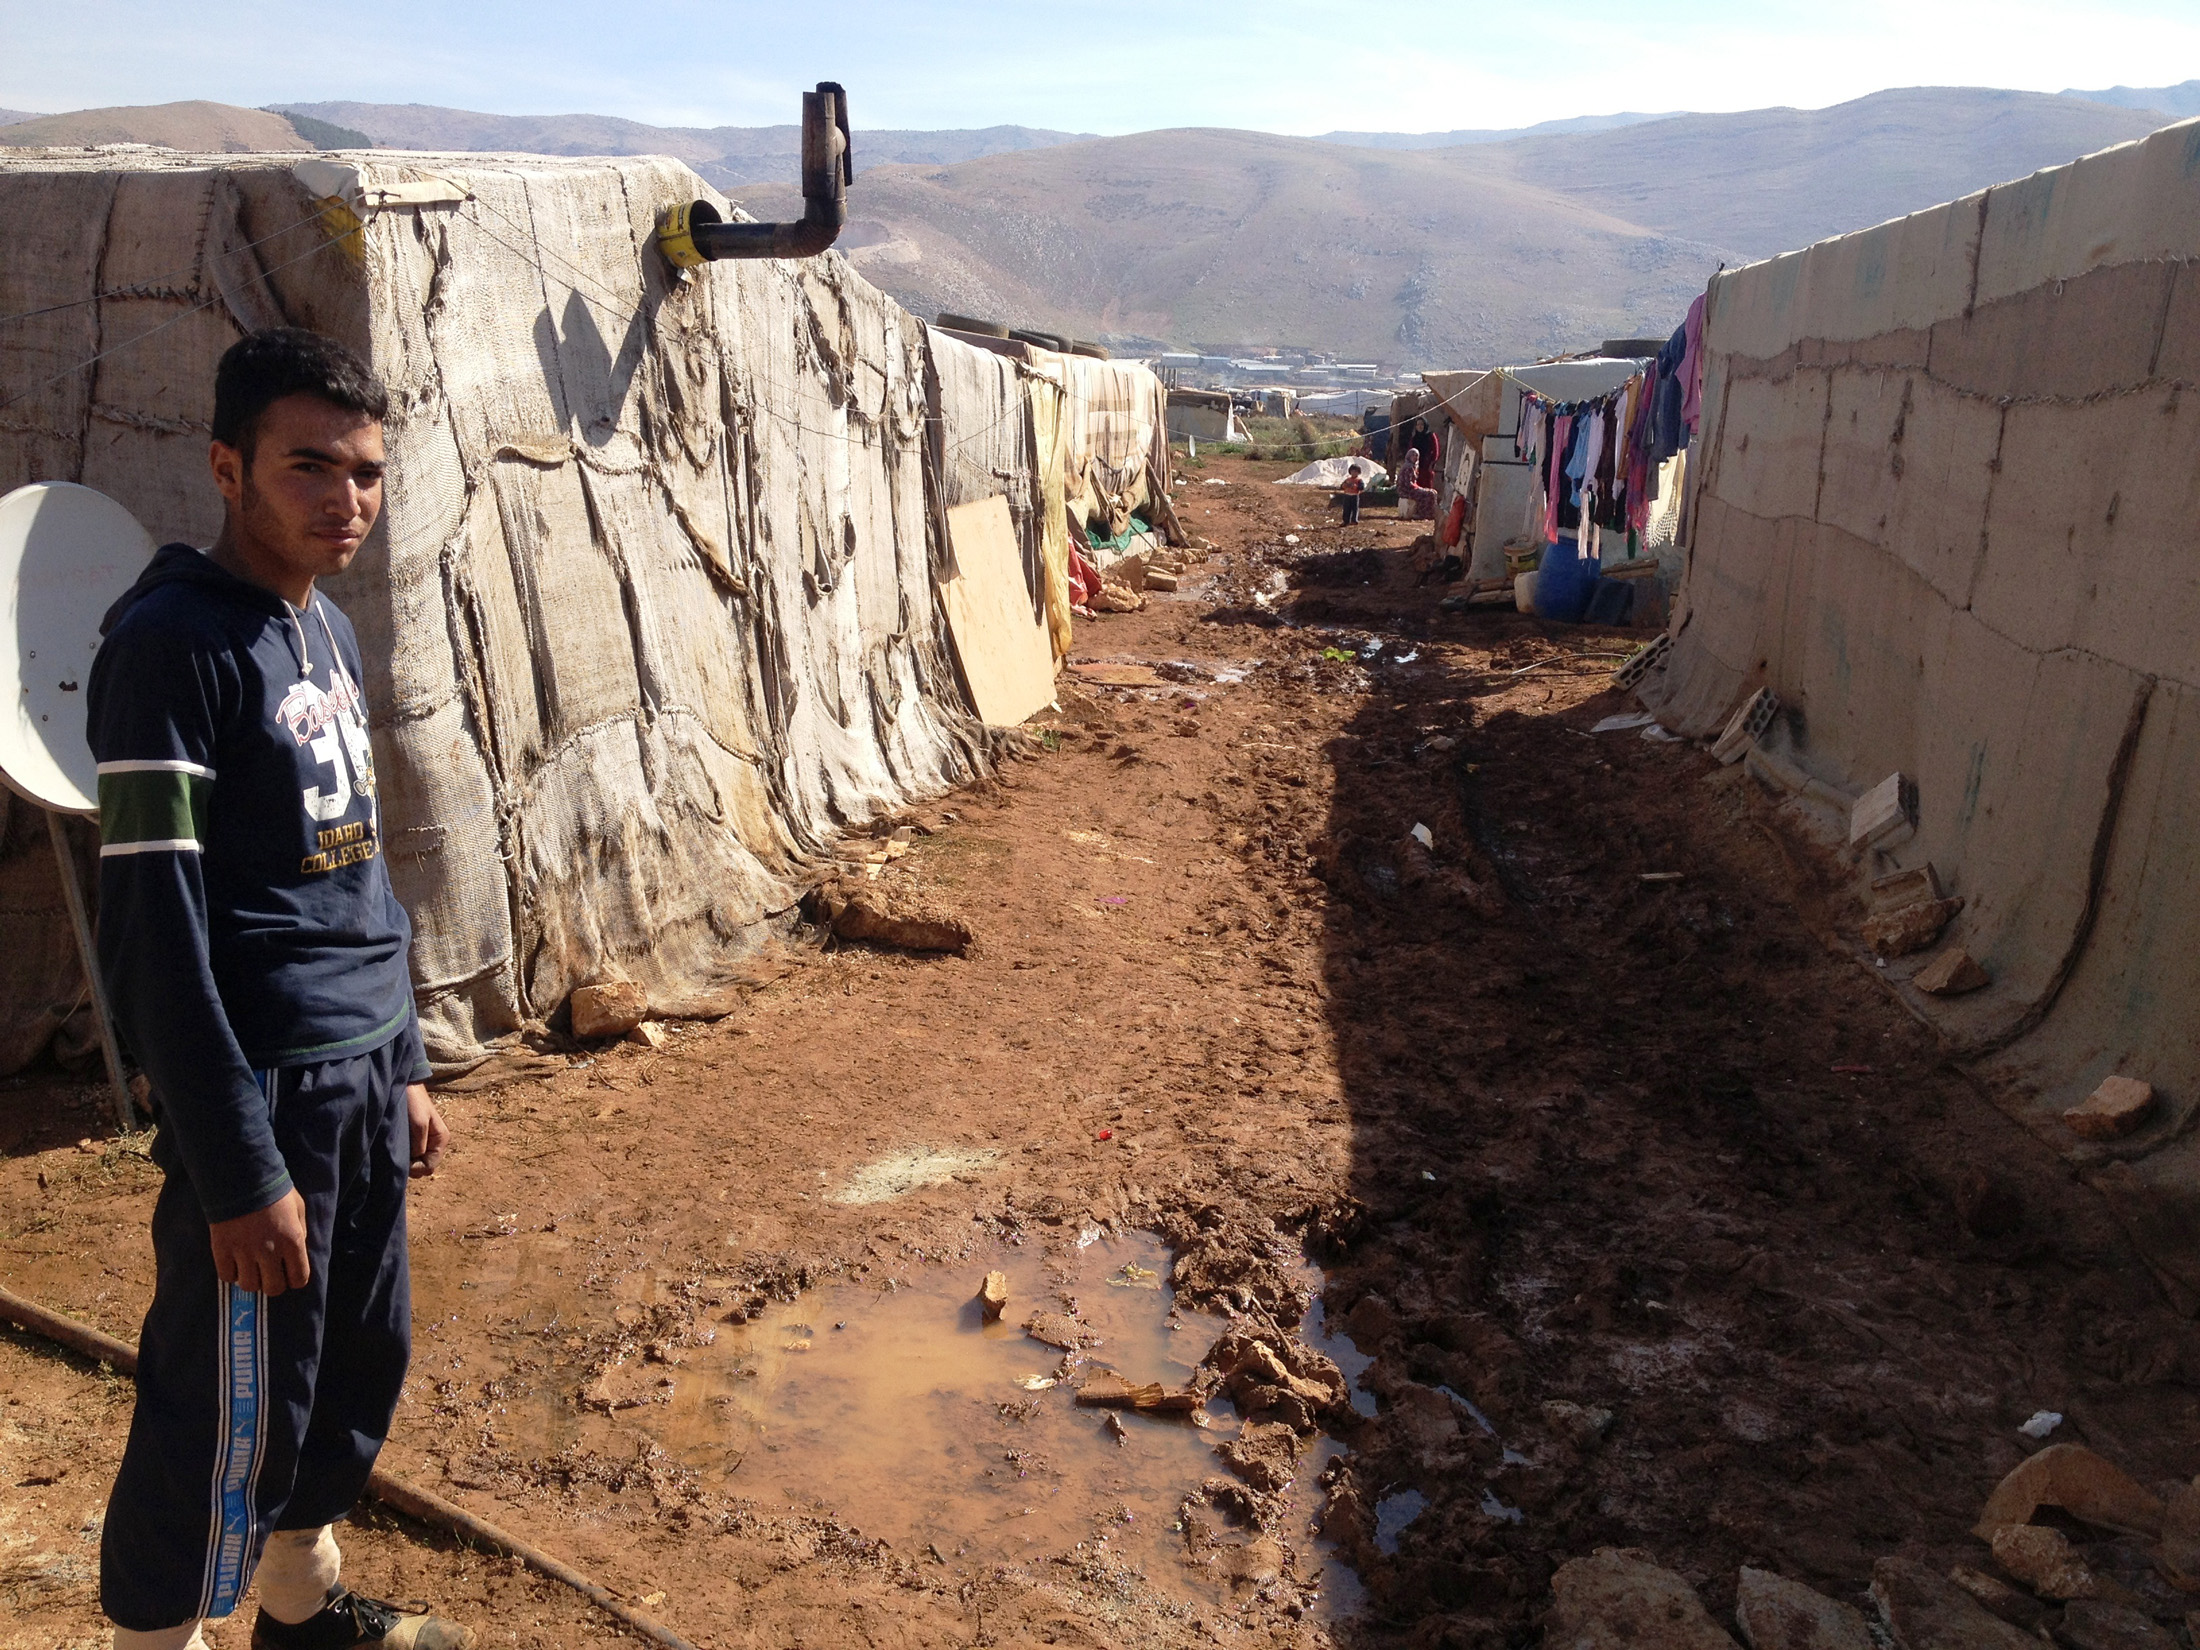 Makeshift refugee homes in Lebanon's Beka'a Valley. (Nov 2012)